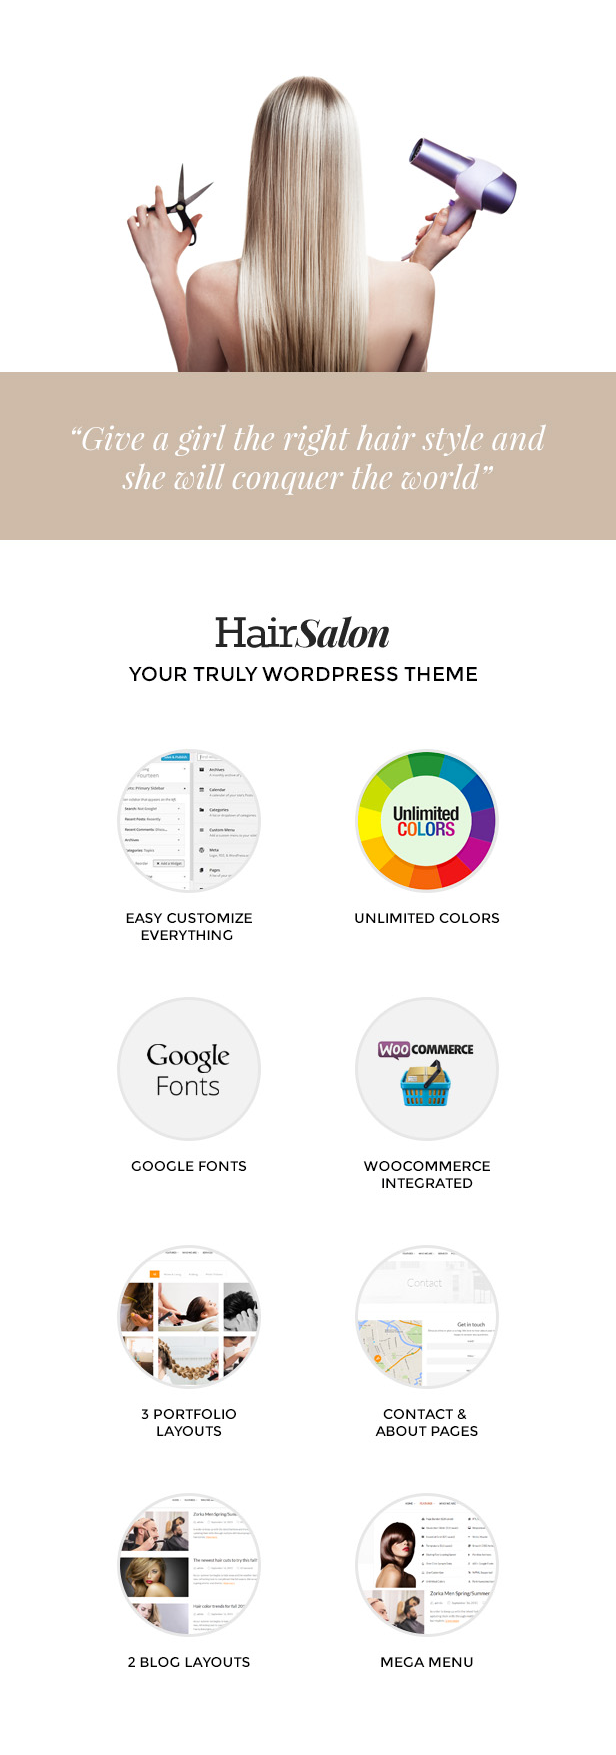 Hair Salon - Barber & Beauty Shop WordPress Theme - 6